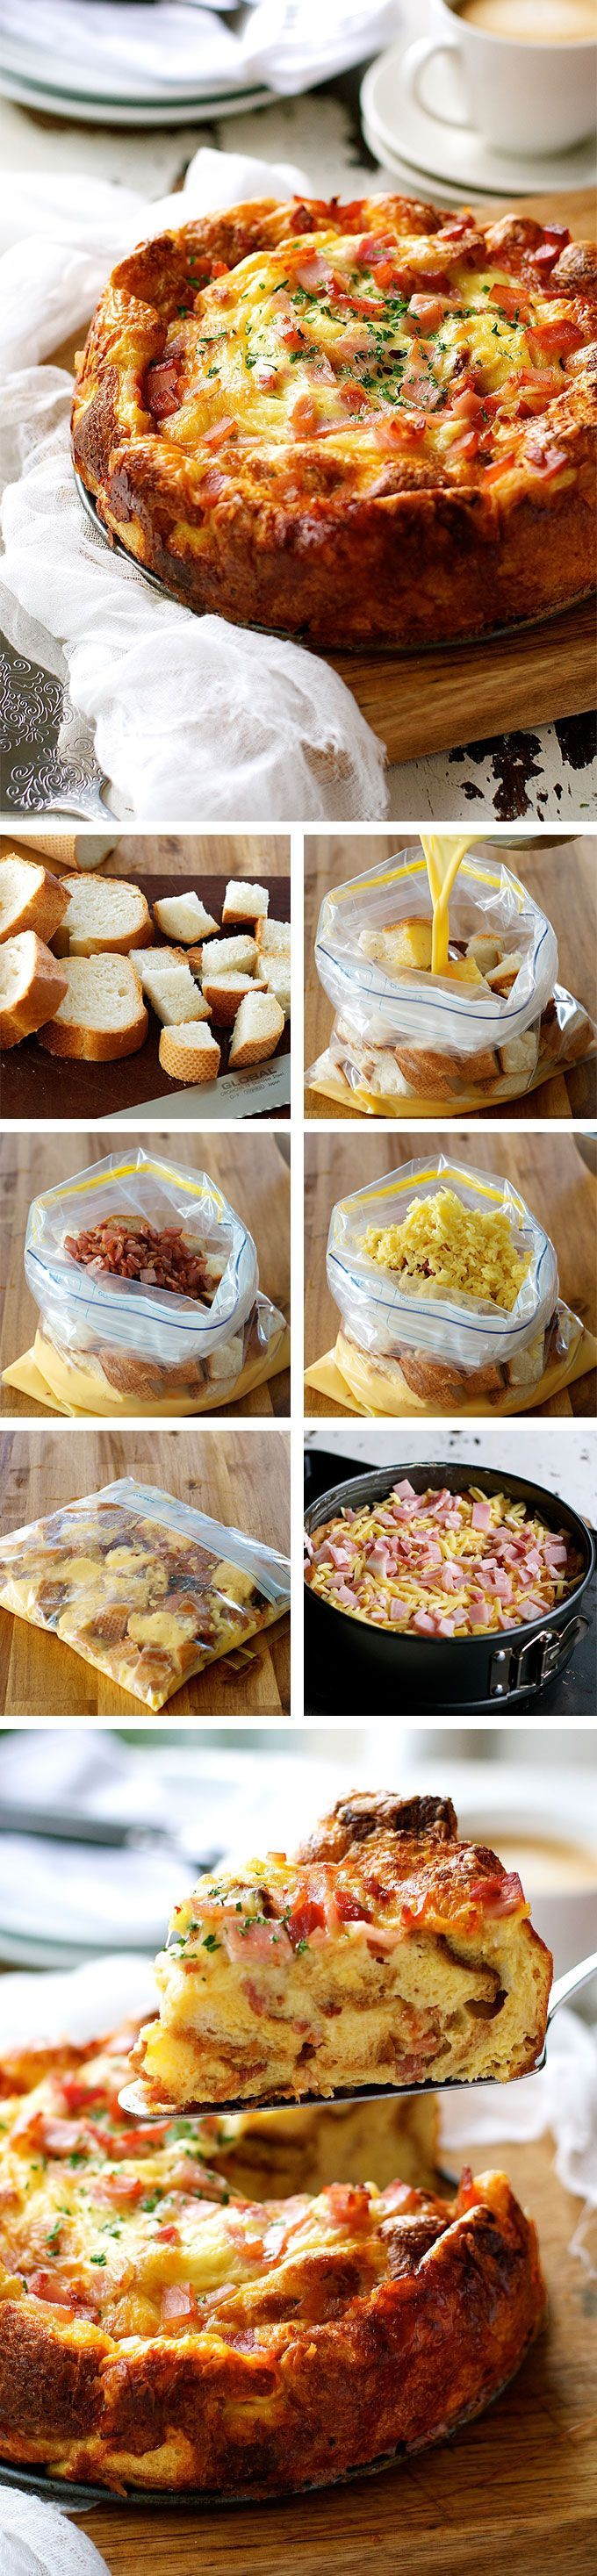 Cheese Bacon Strata Cake - made with bread, eggs, milk, cheese and bacon. Great make ahead dish.